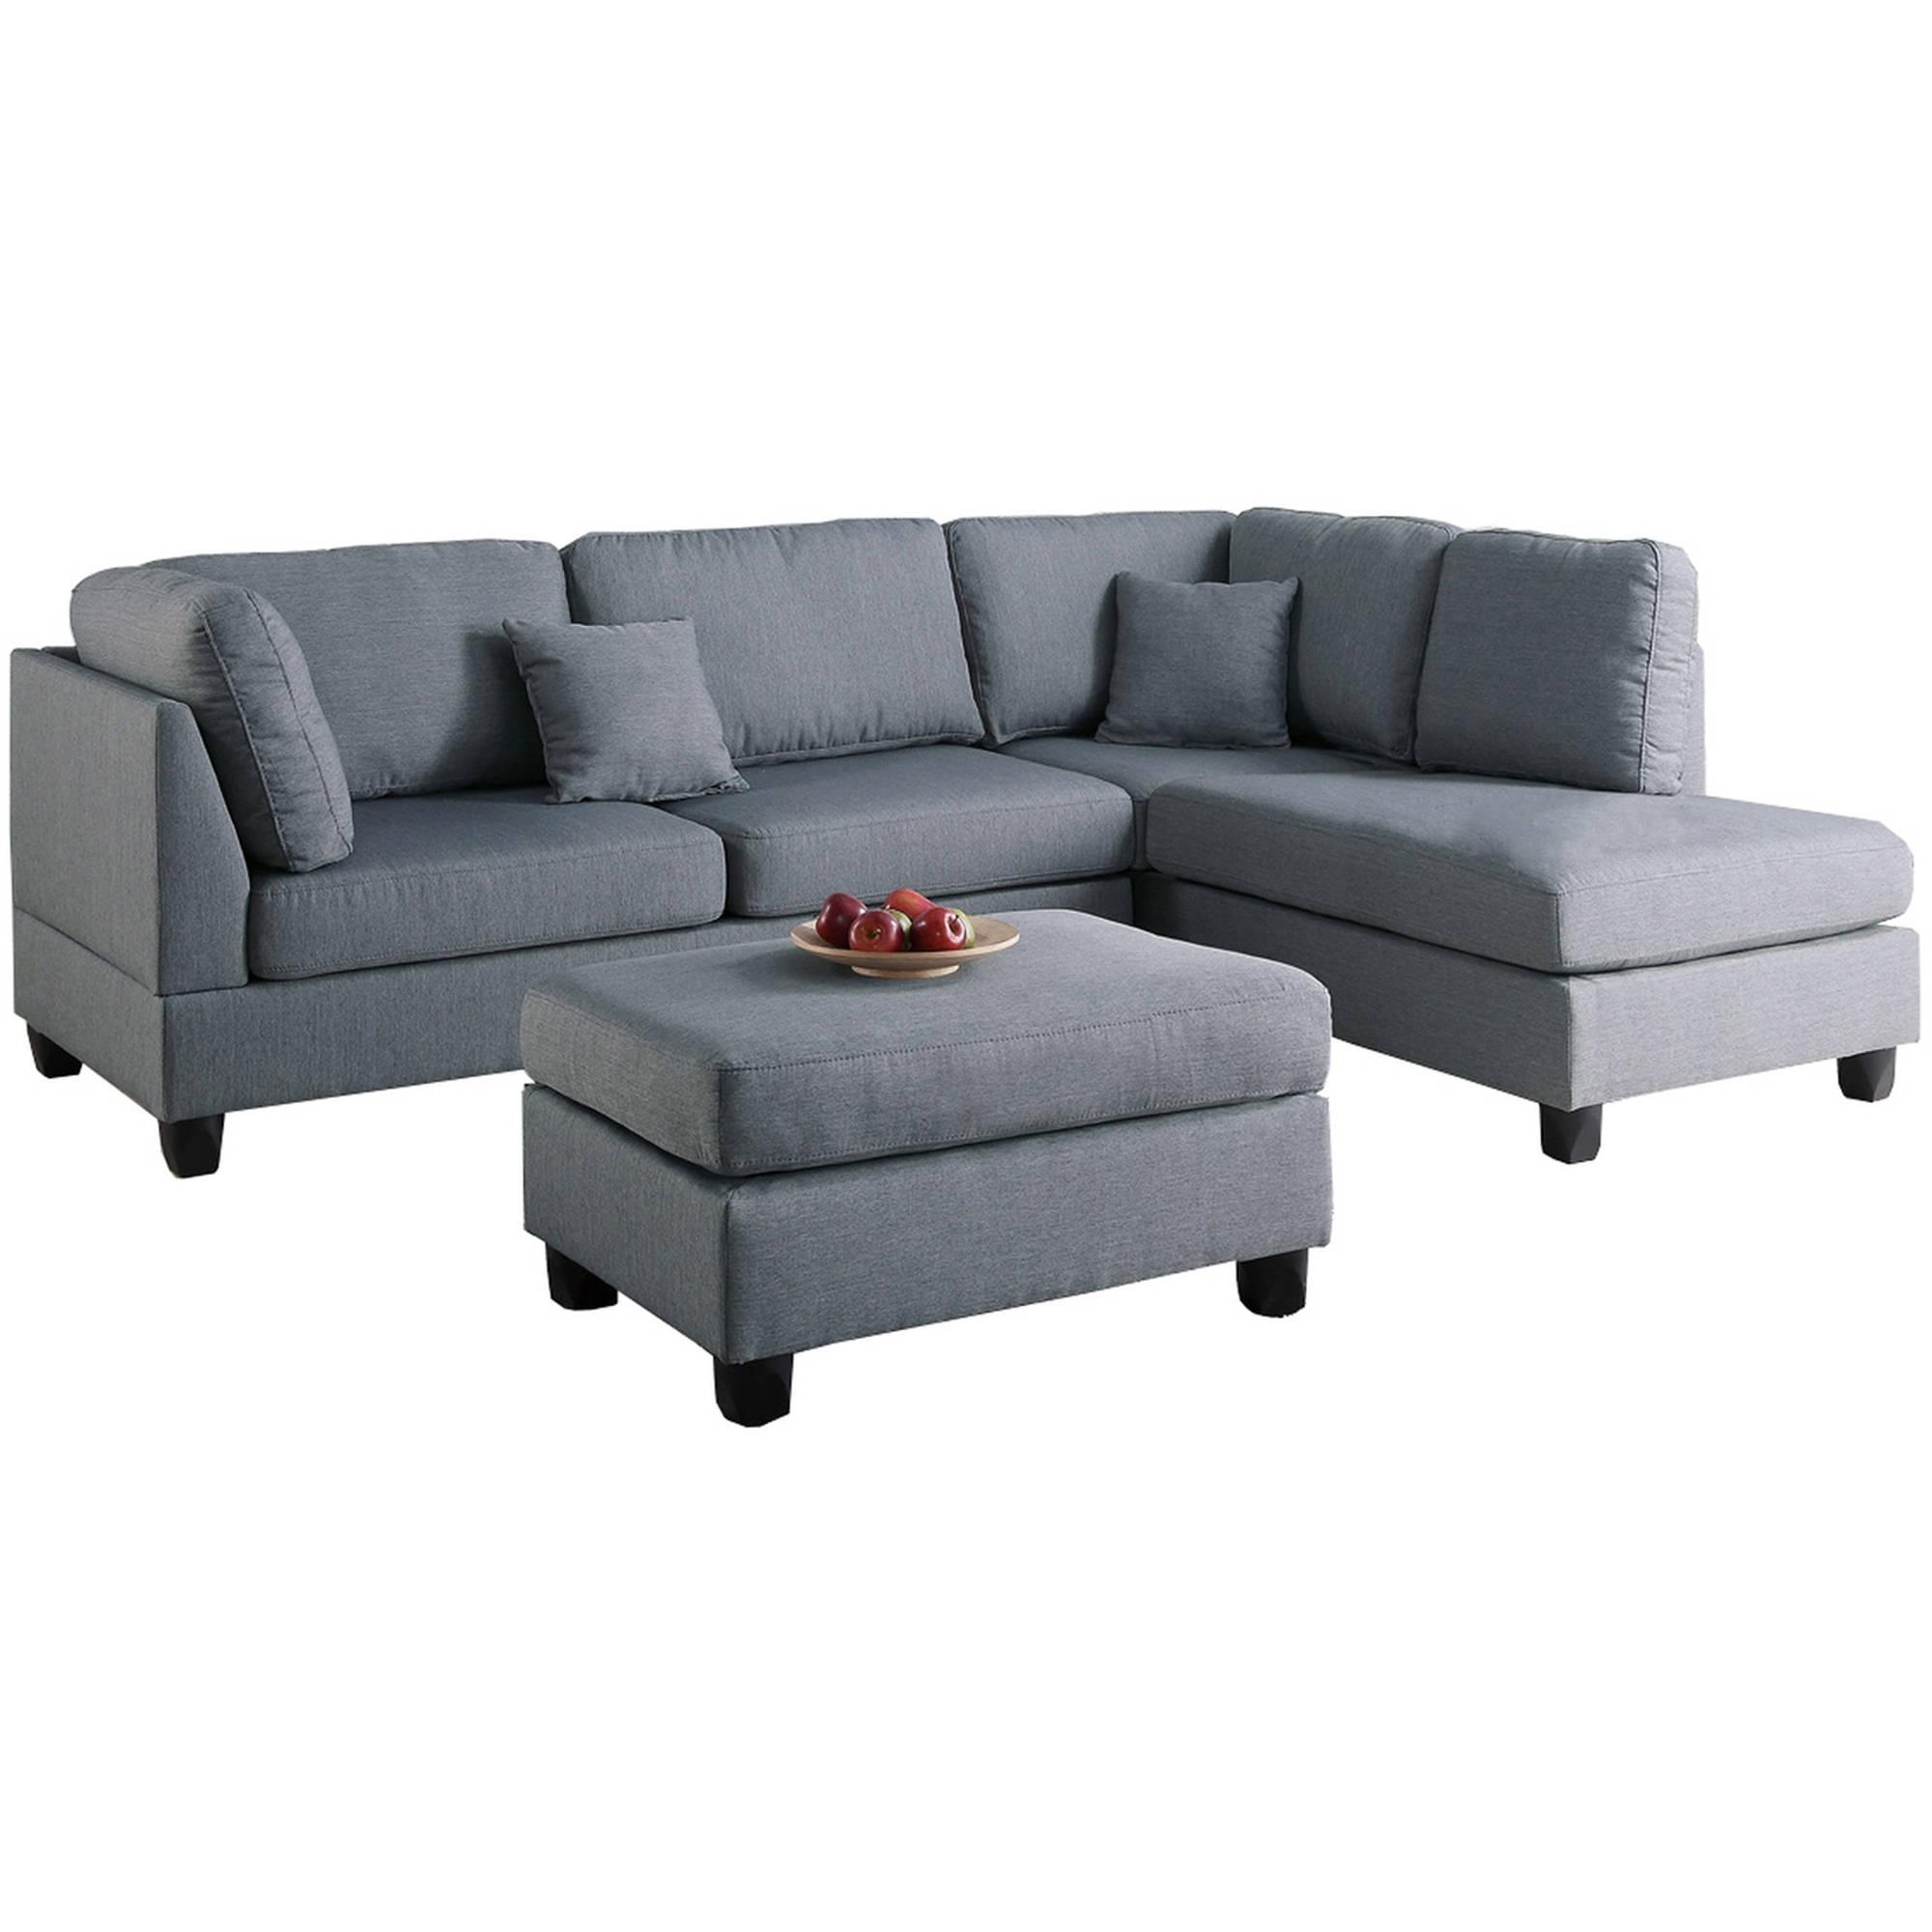 Living Room Furniture Intended For Wallmart Sofa (Image 11 of 20)